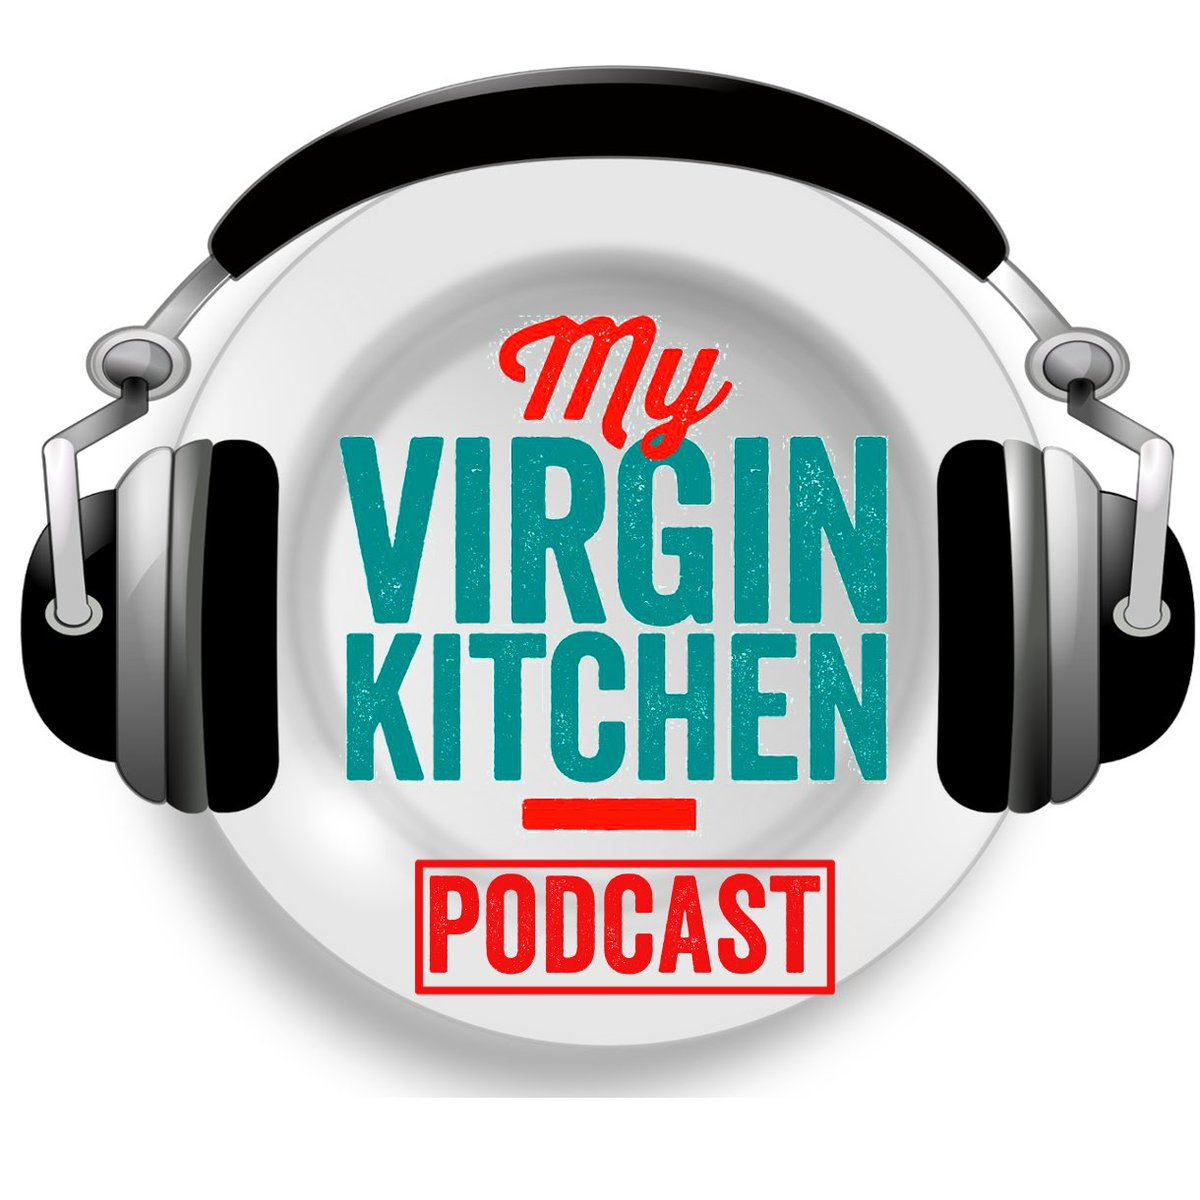 My Virgin Kitchen Podcast